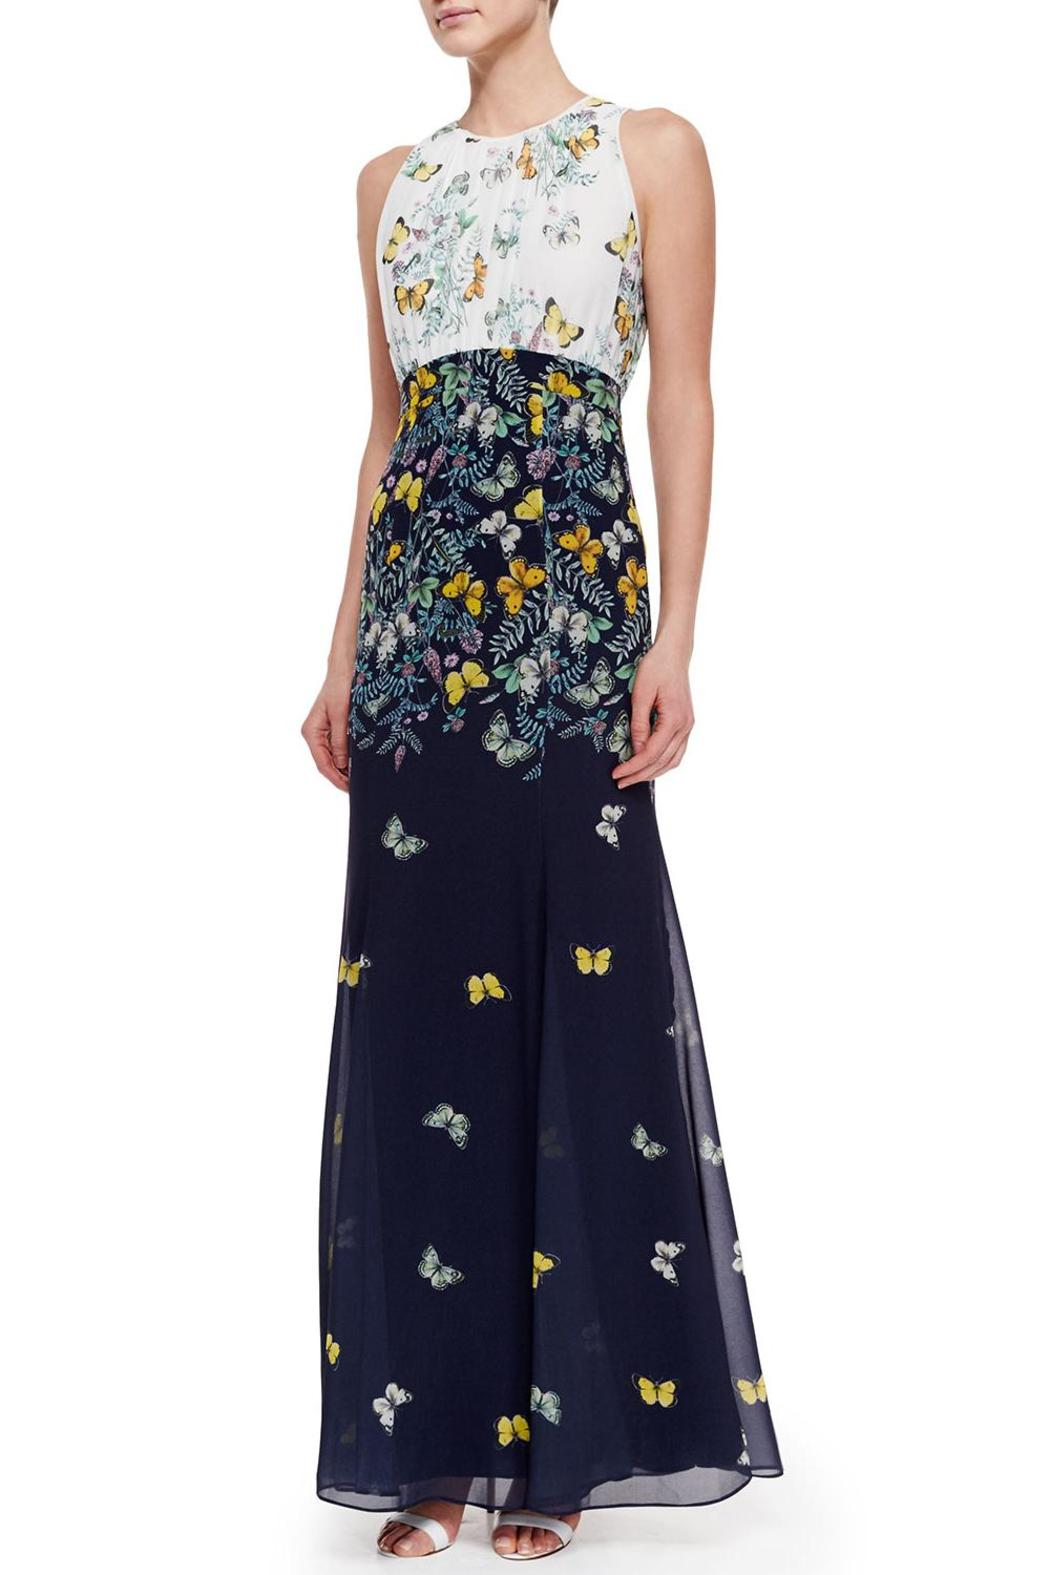 Erin Fetherston Erfly Maxi Dress From New Jersey By District 5